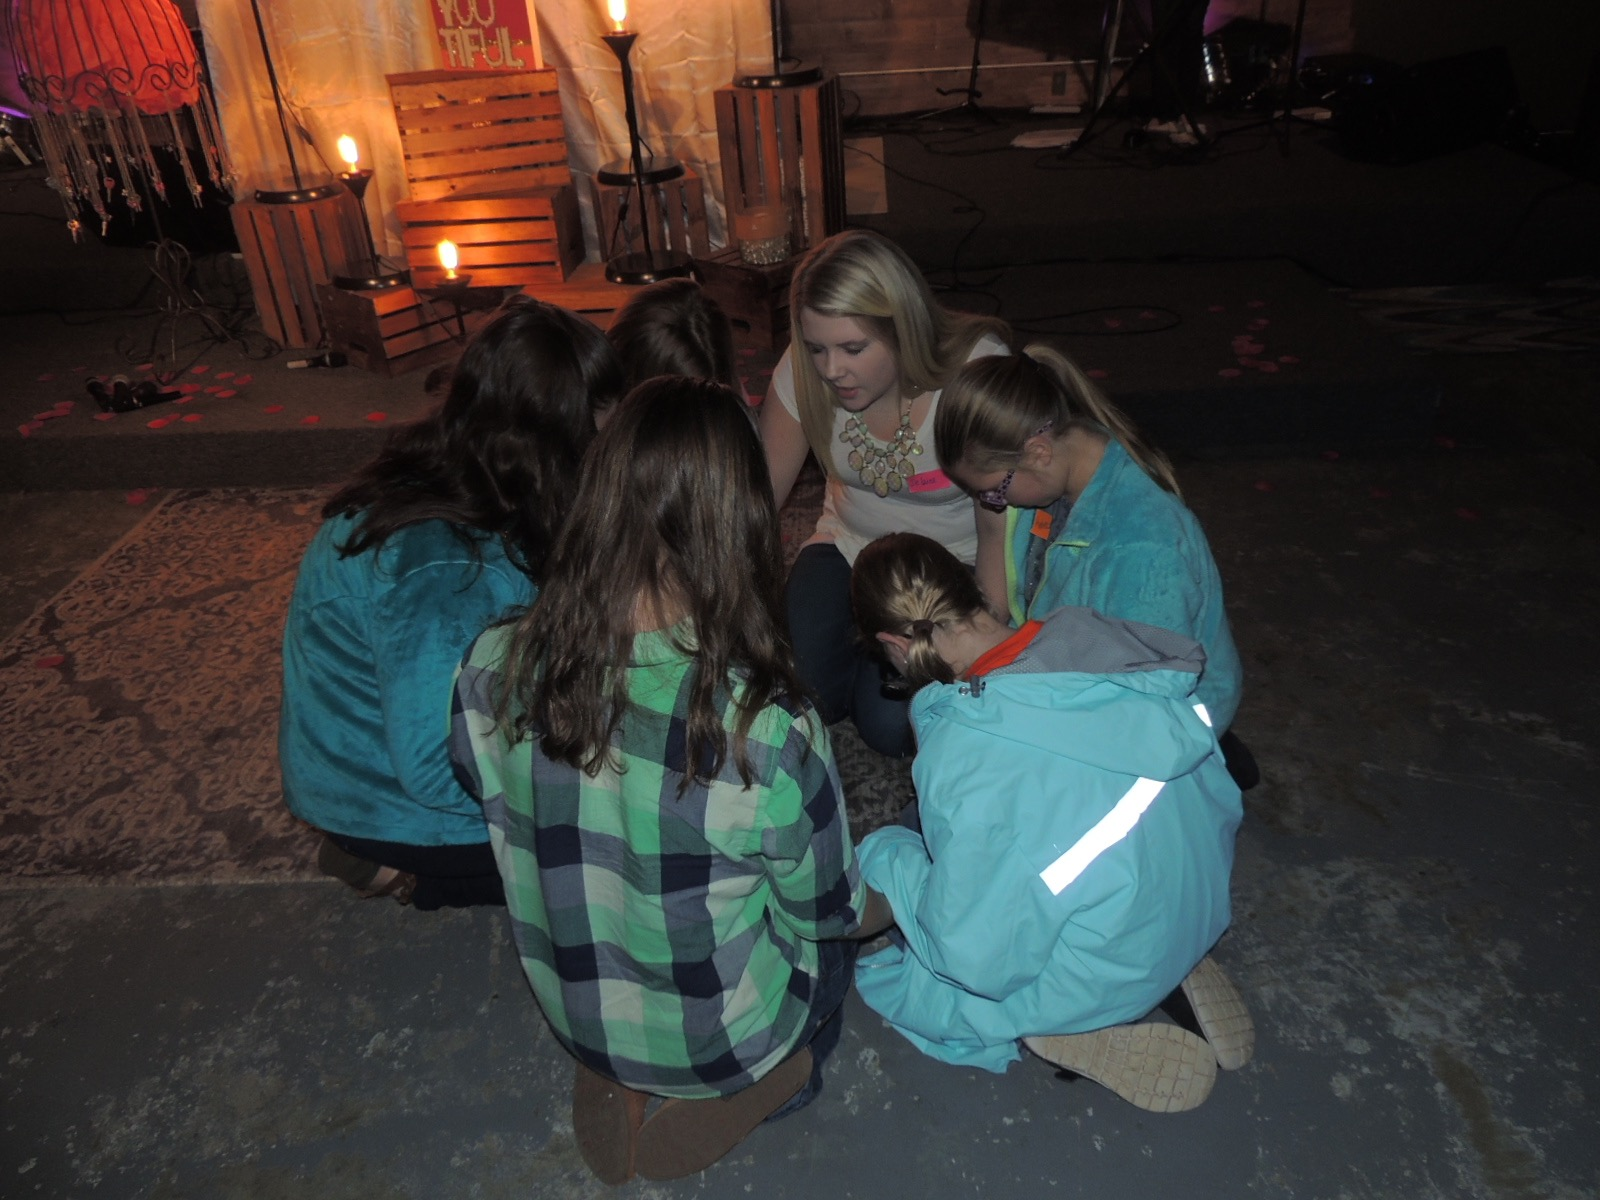 Youth leader praying over girls!